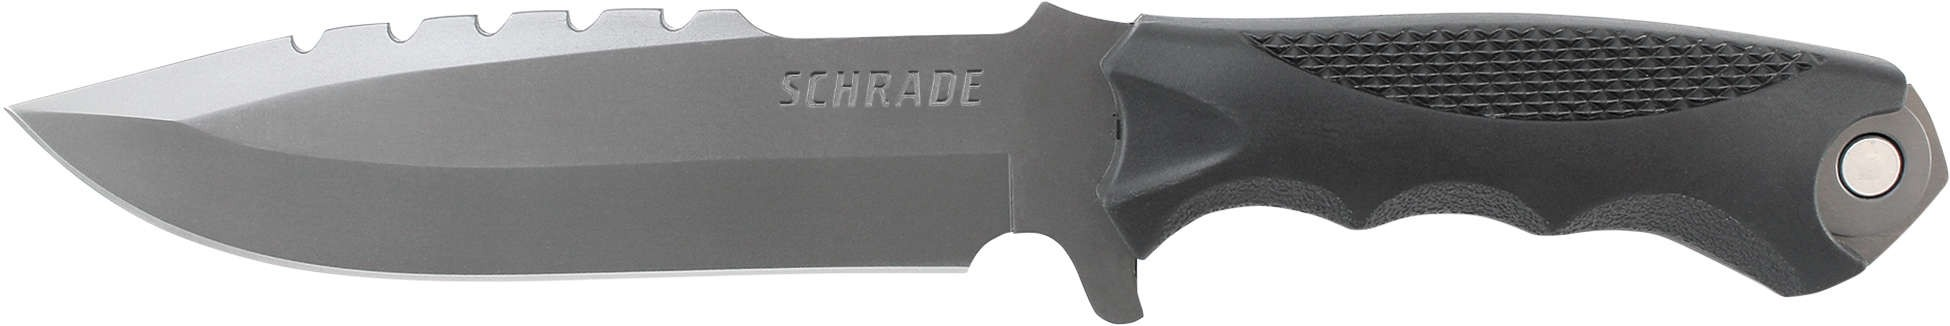 Schrade SCHF27 Extreme Survival Full Tang Drop Point Fixed Blade Knife & Tool TPE Handle